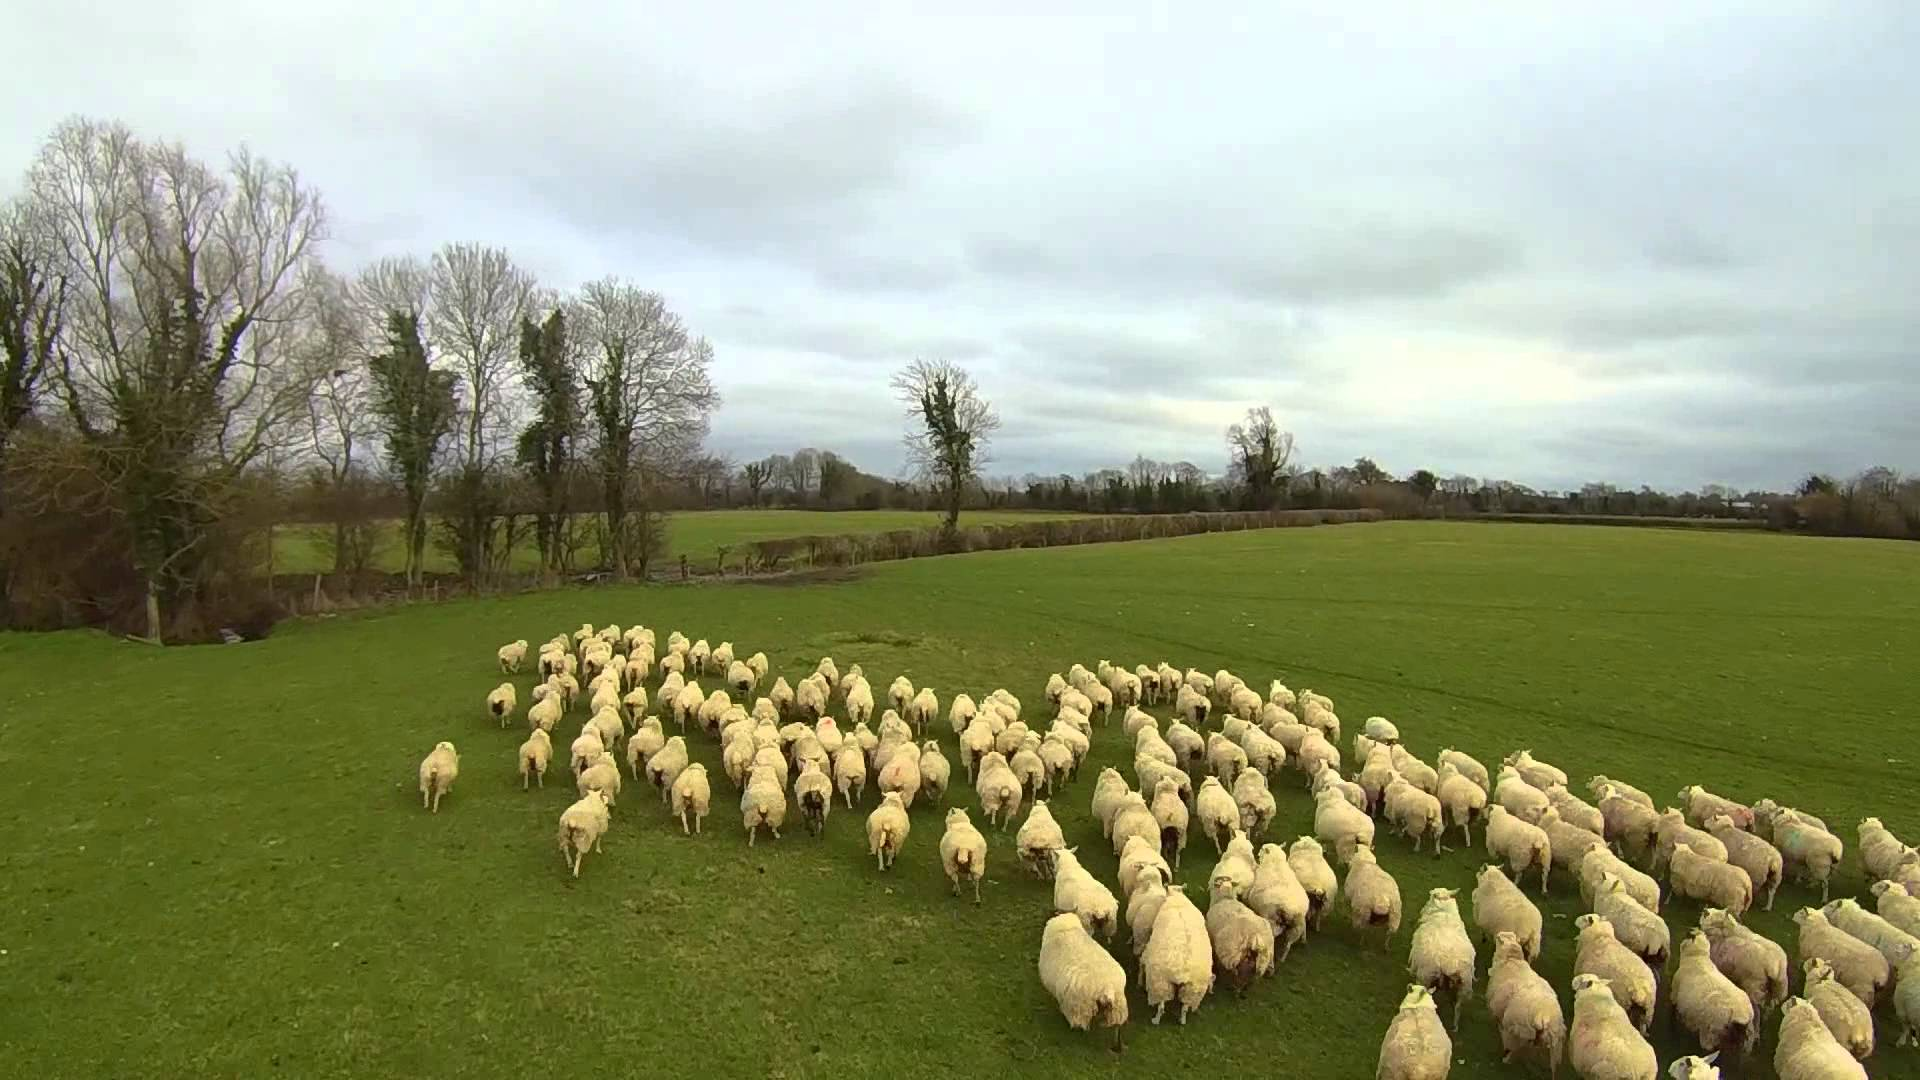 Poor sheep dogs, they're going to lose their jobs